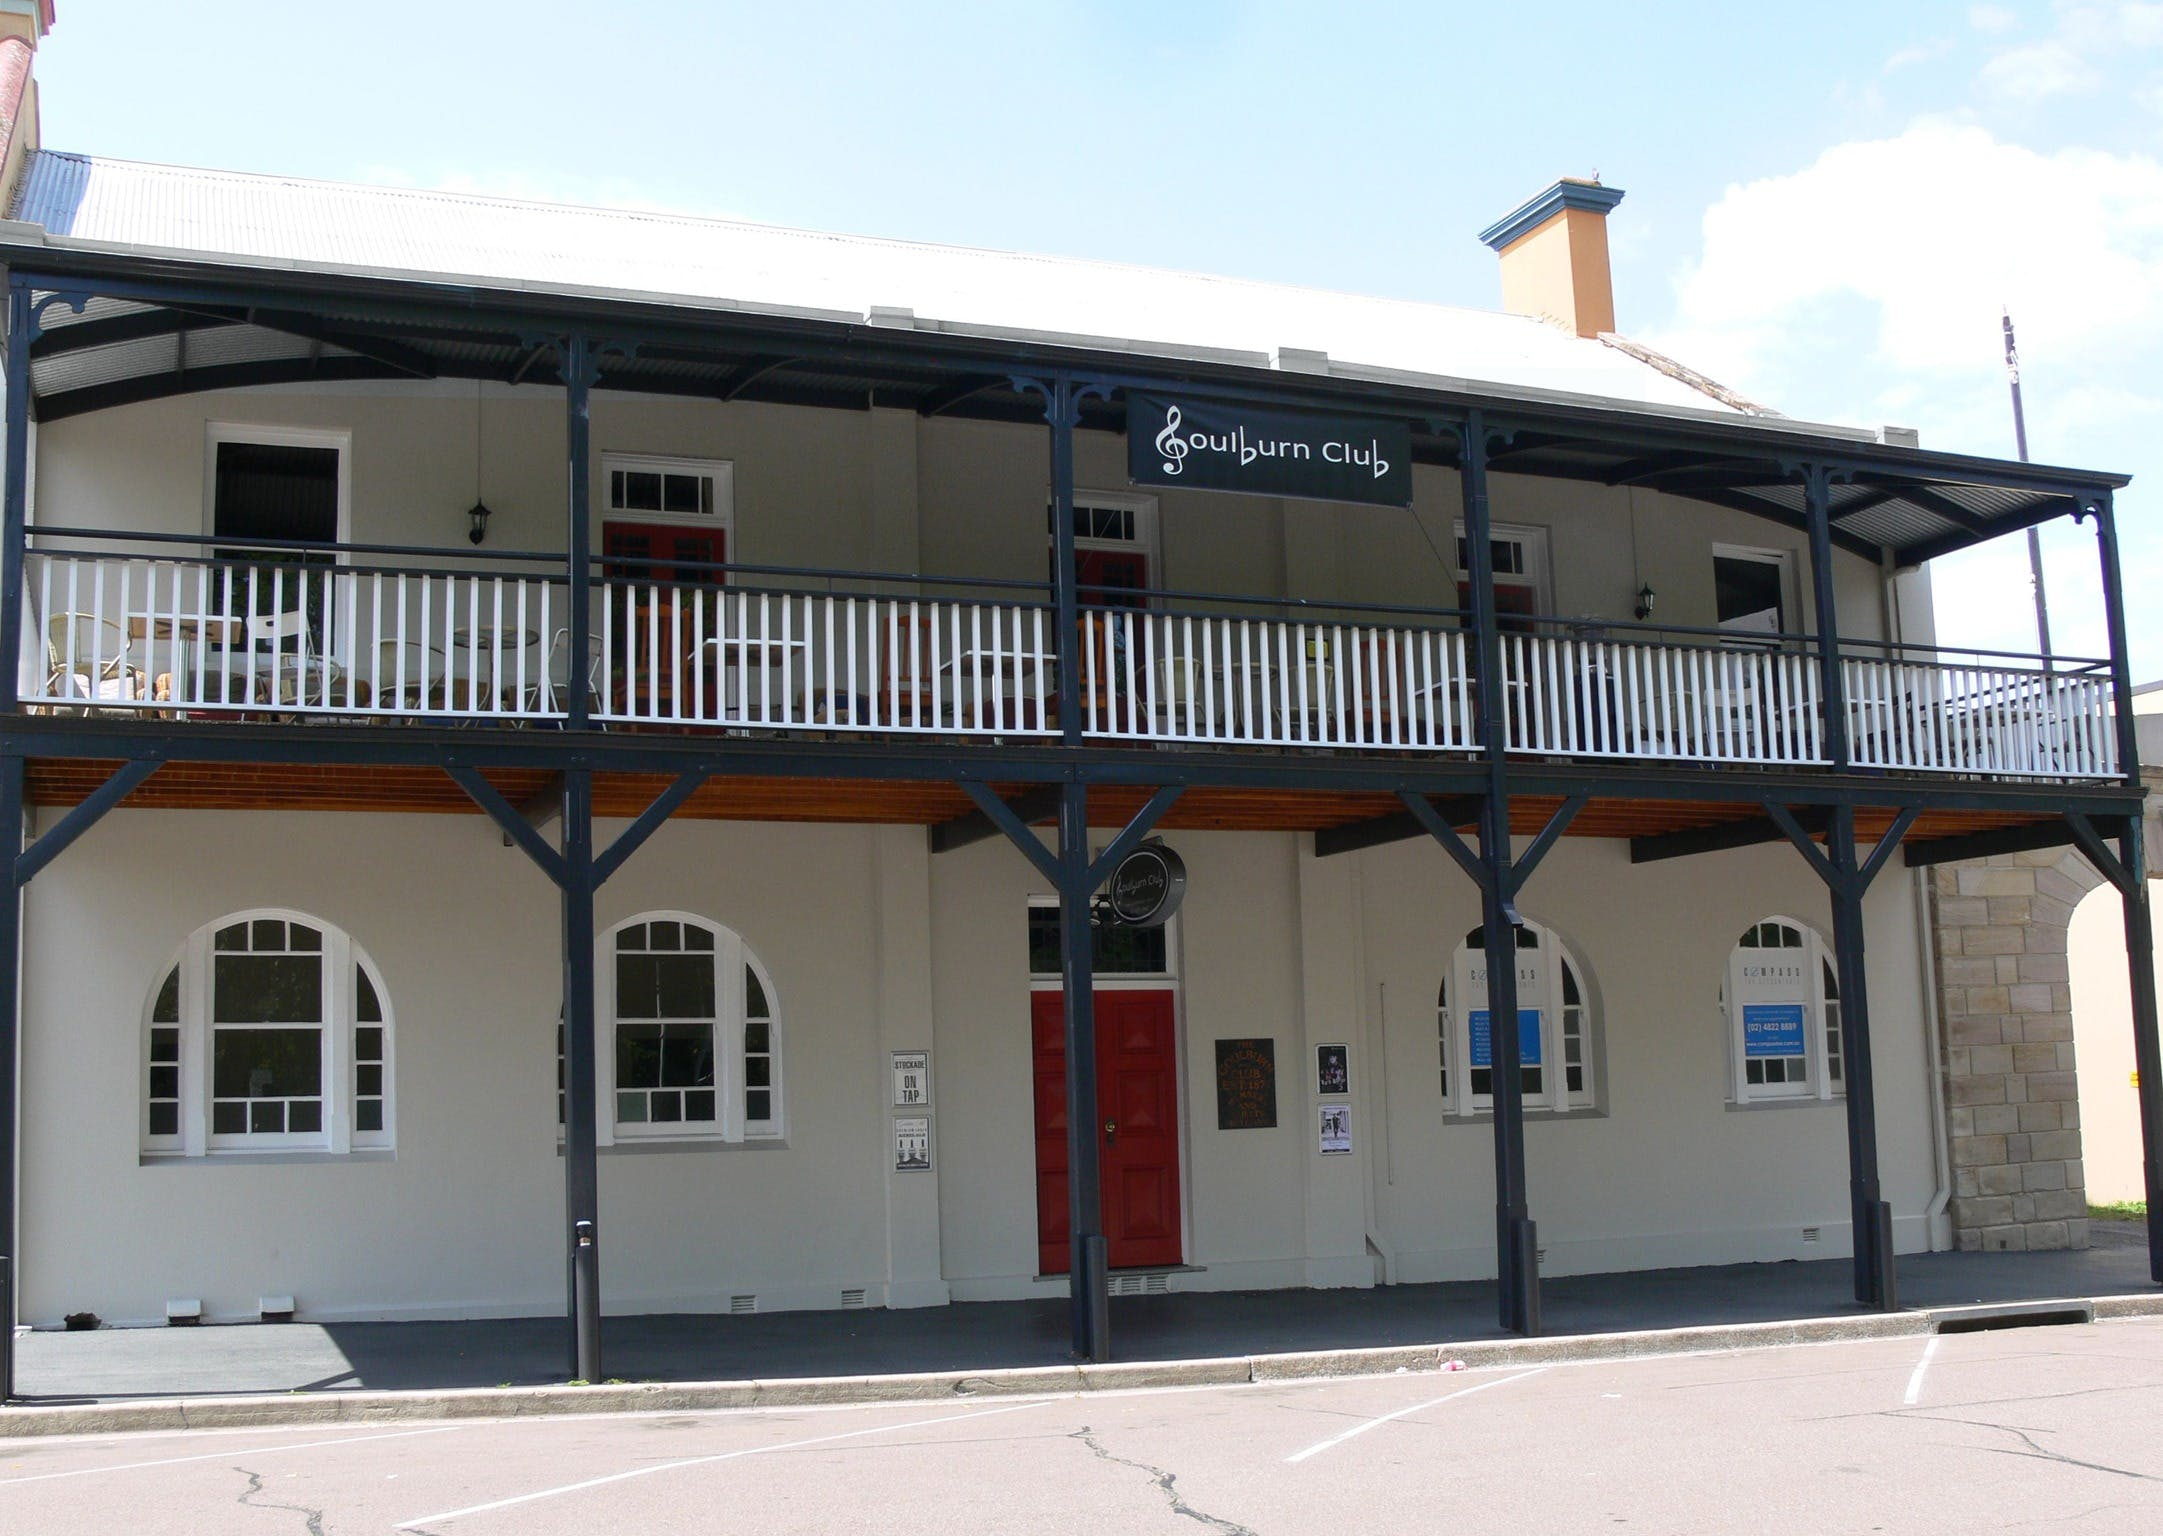 Open Mic Night at the Goulburn Club - QLD Tourism